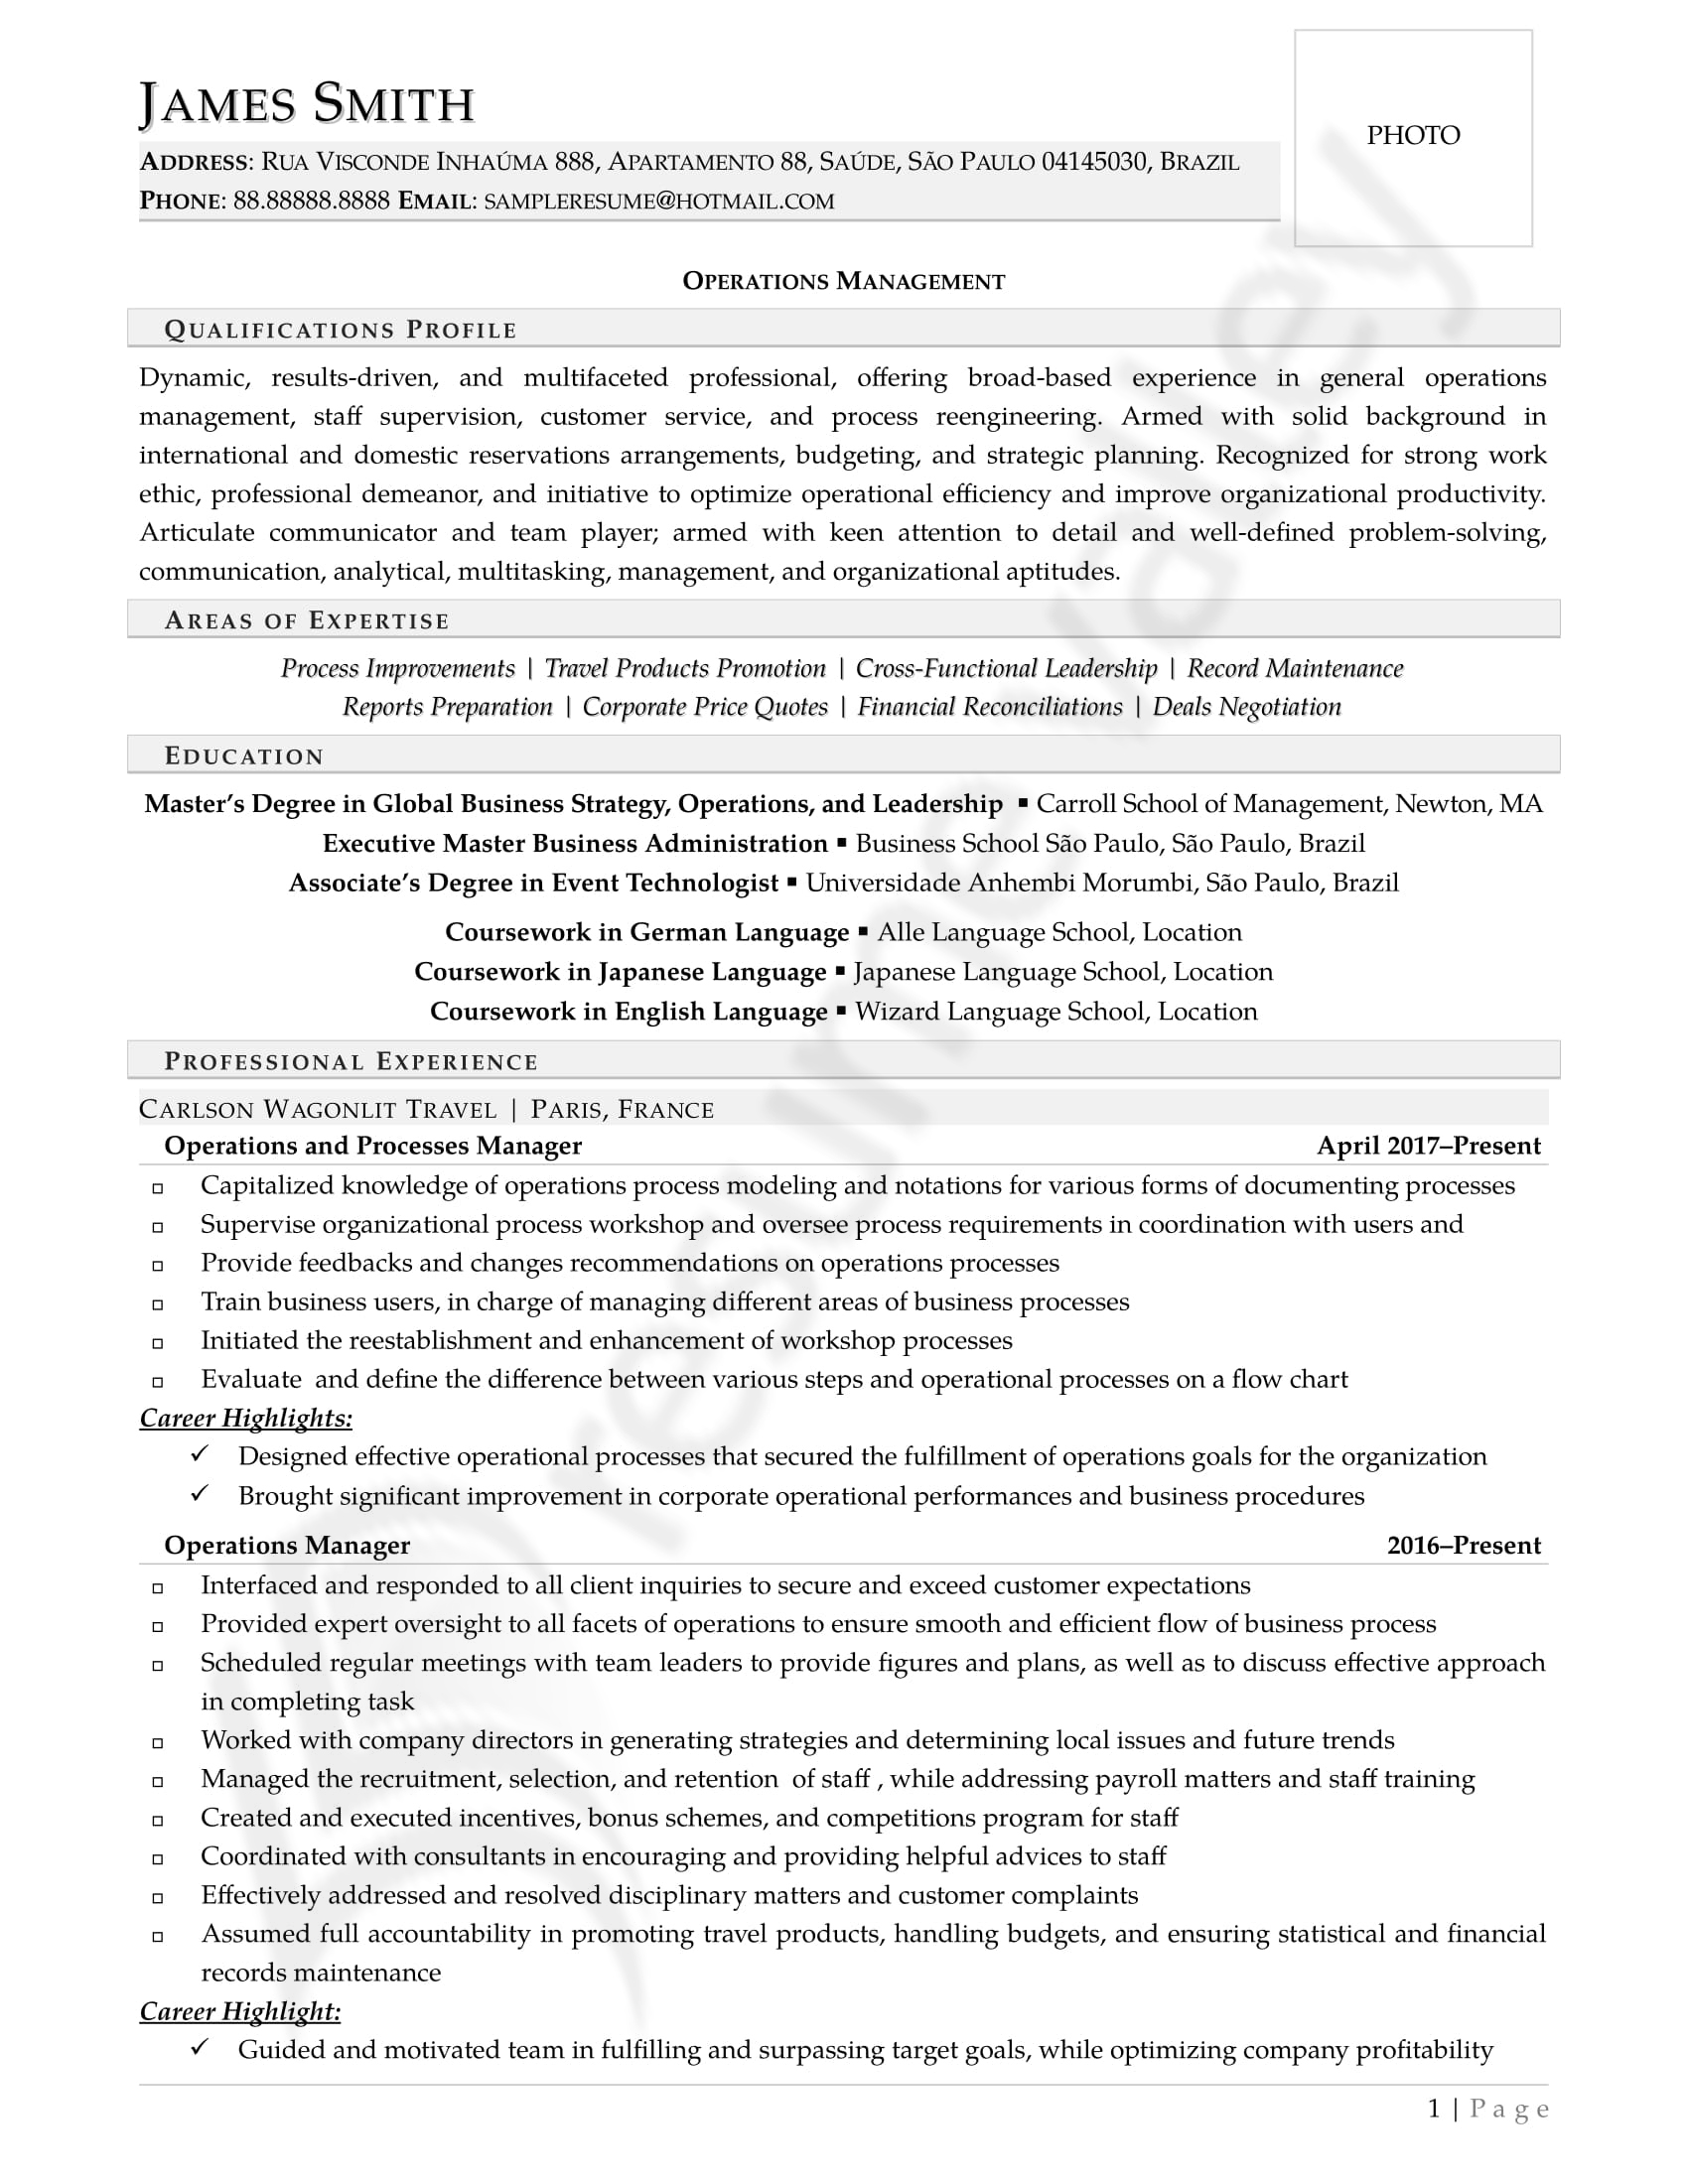 Operations Manager_Curriculum Vitae